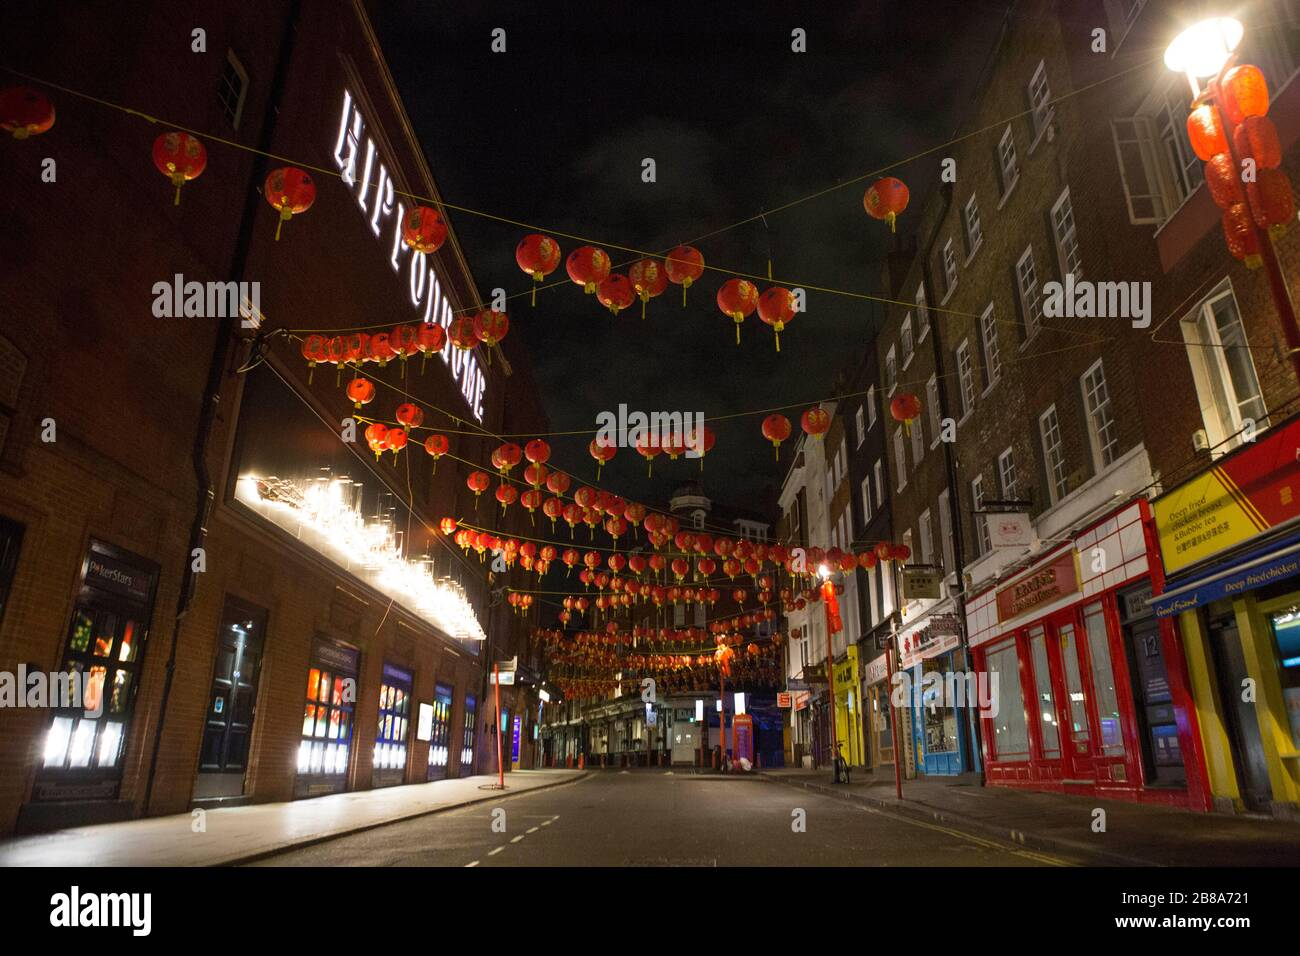 London, UK. 21st March 2020. Empty streets of Chinatown just after midnight on Saturday.  The government advises staying at home and limiting social life. Stock Photo